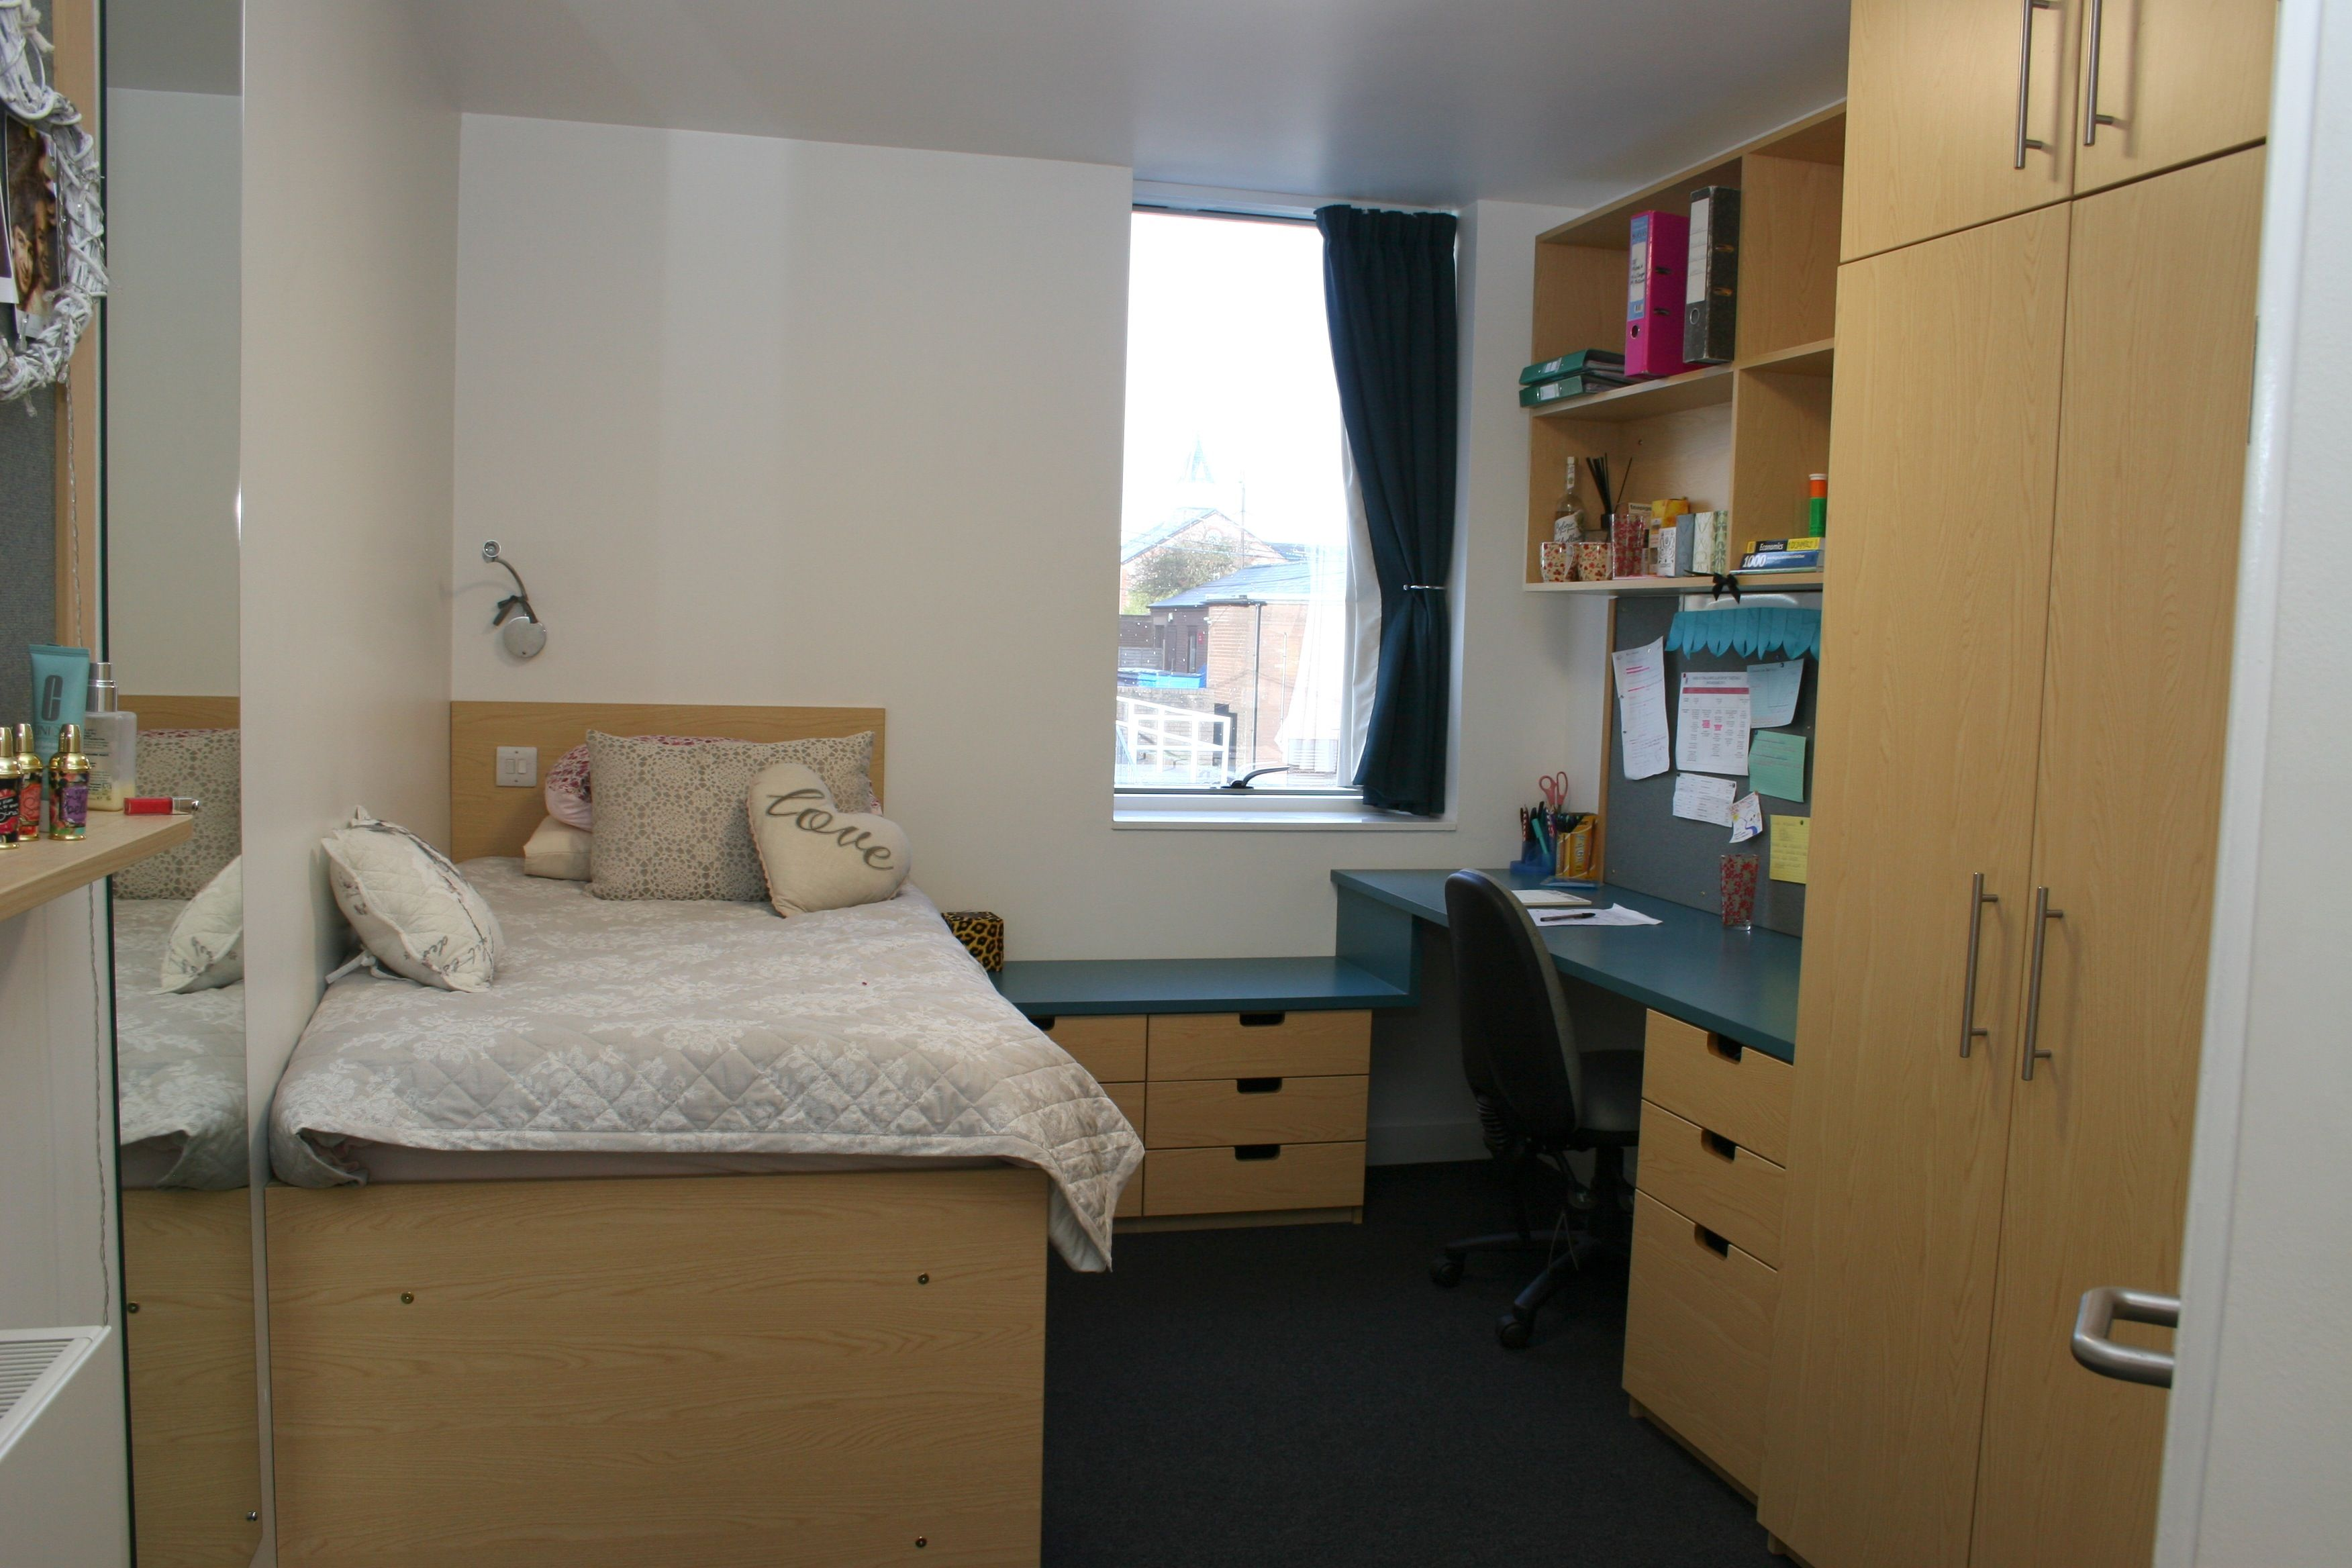 We Installed The Suites Of Bedroom Furniture At Haberdashers Monmouth School For S This Bespoke Suite Included A Bed Desk Wardrobe And Set